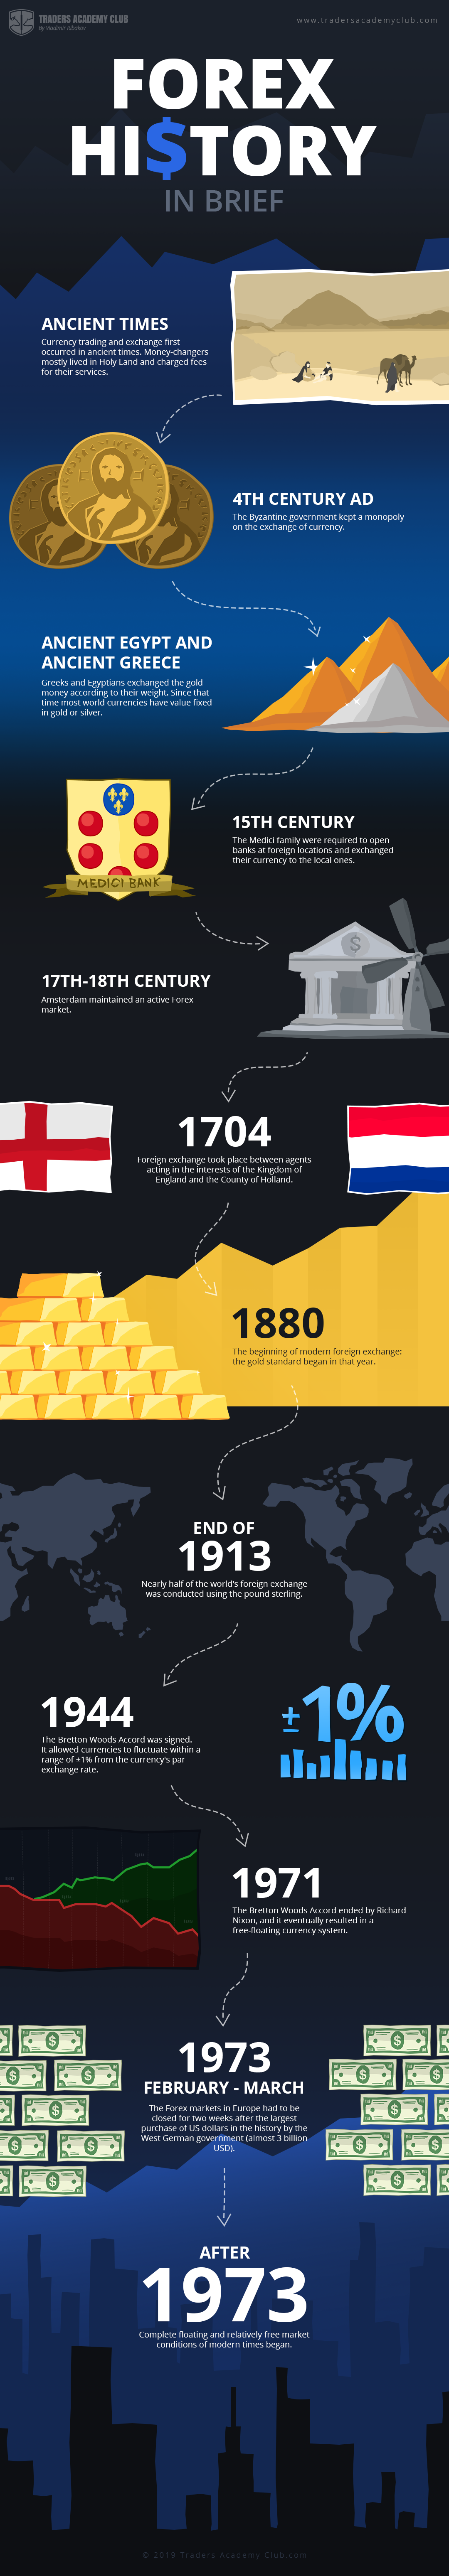 What is Forex - Brief History Infogram